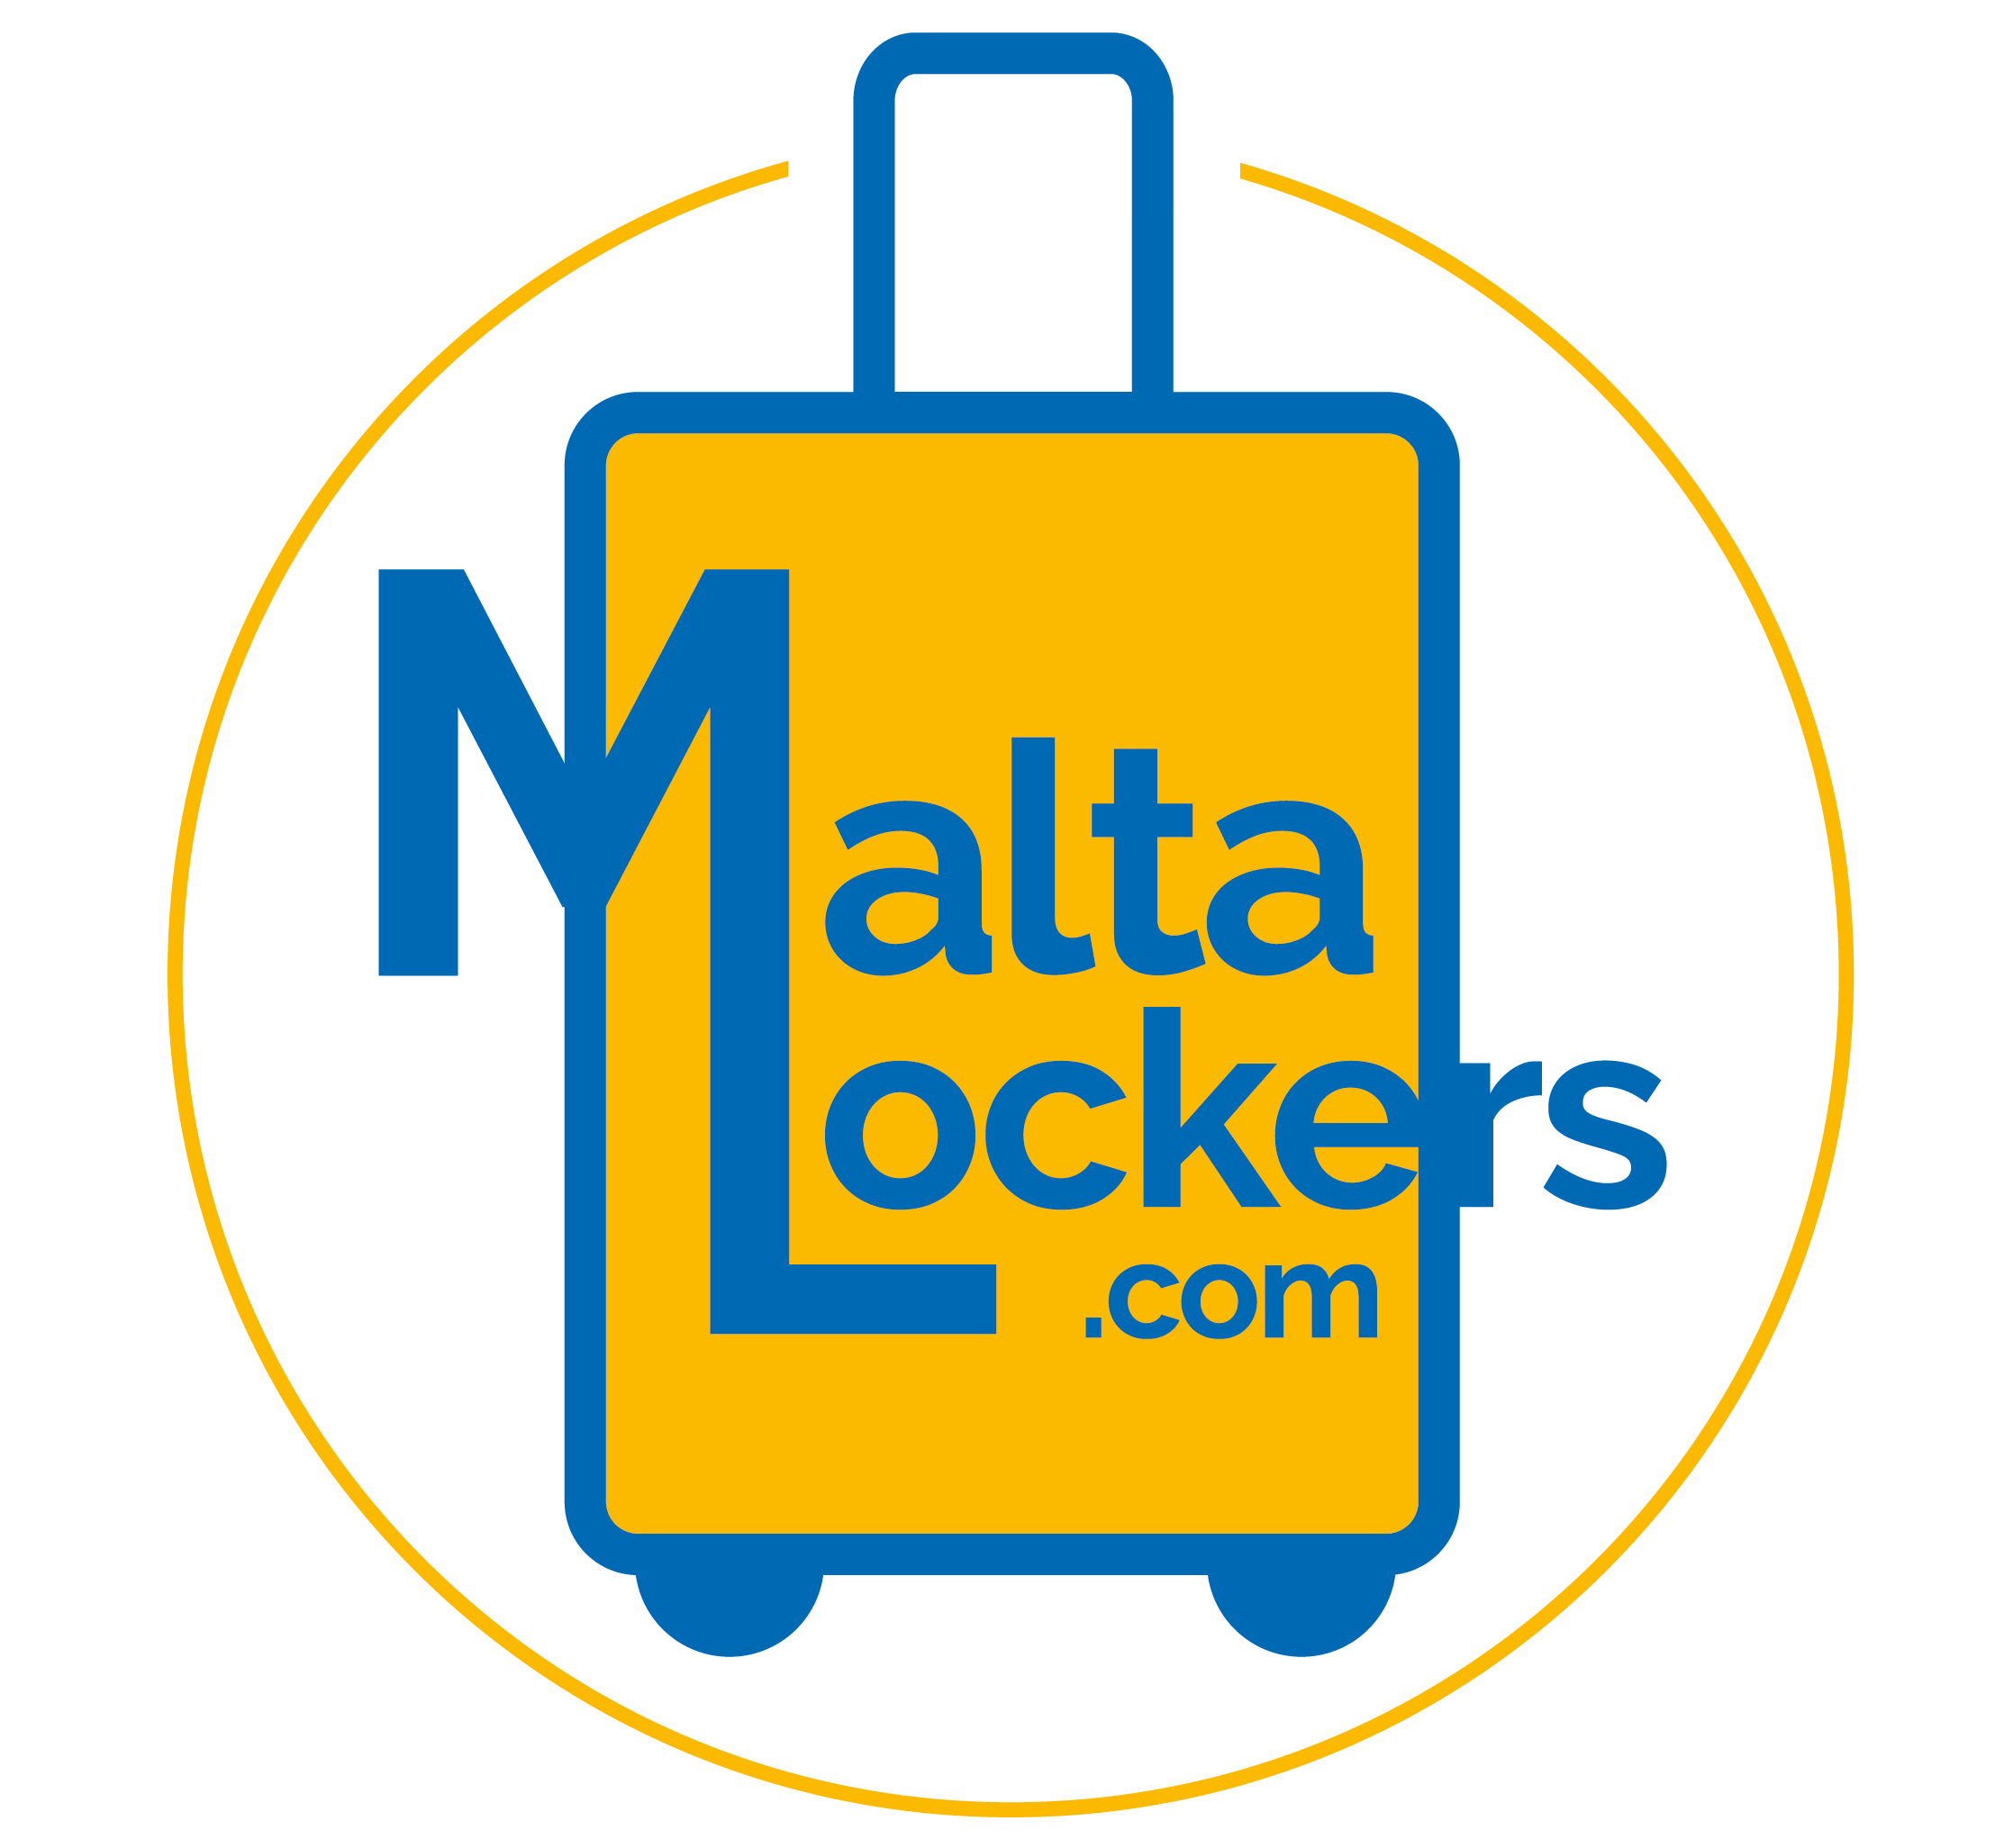 Luggage Storage Lockers – Malta Luggage Storage